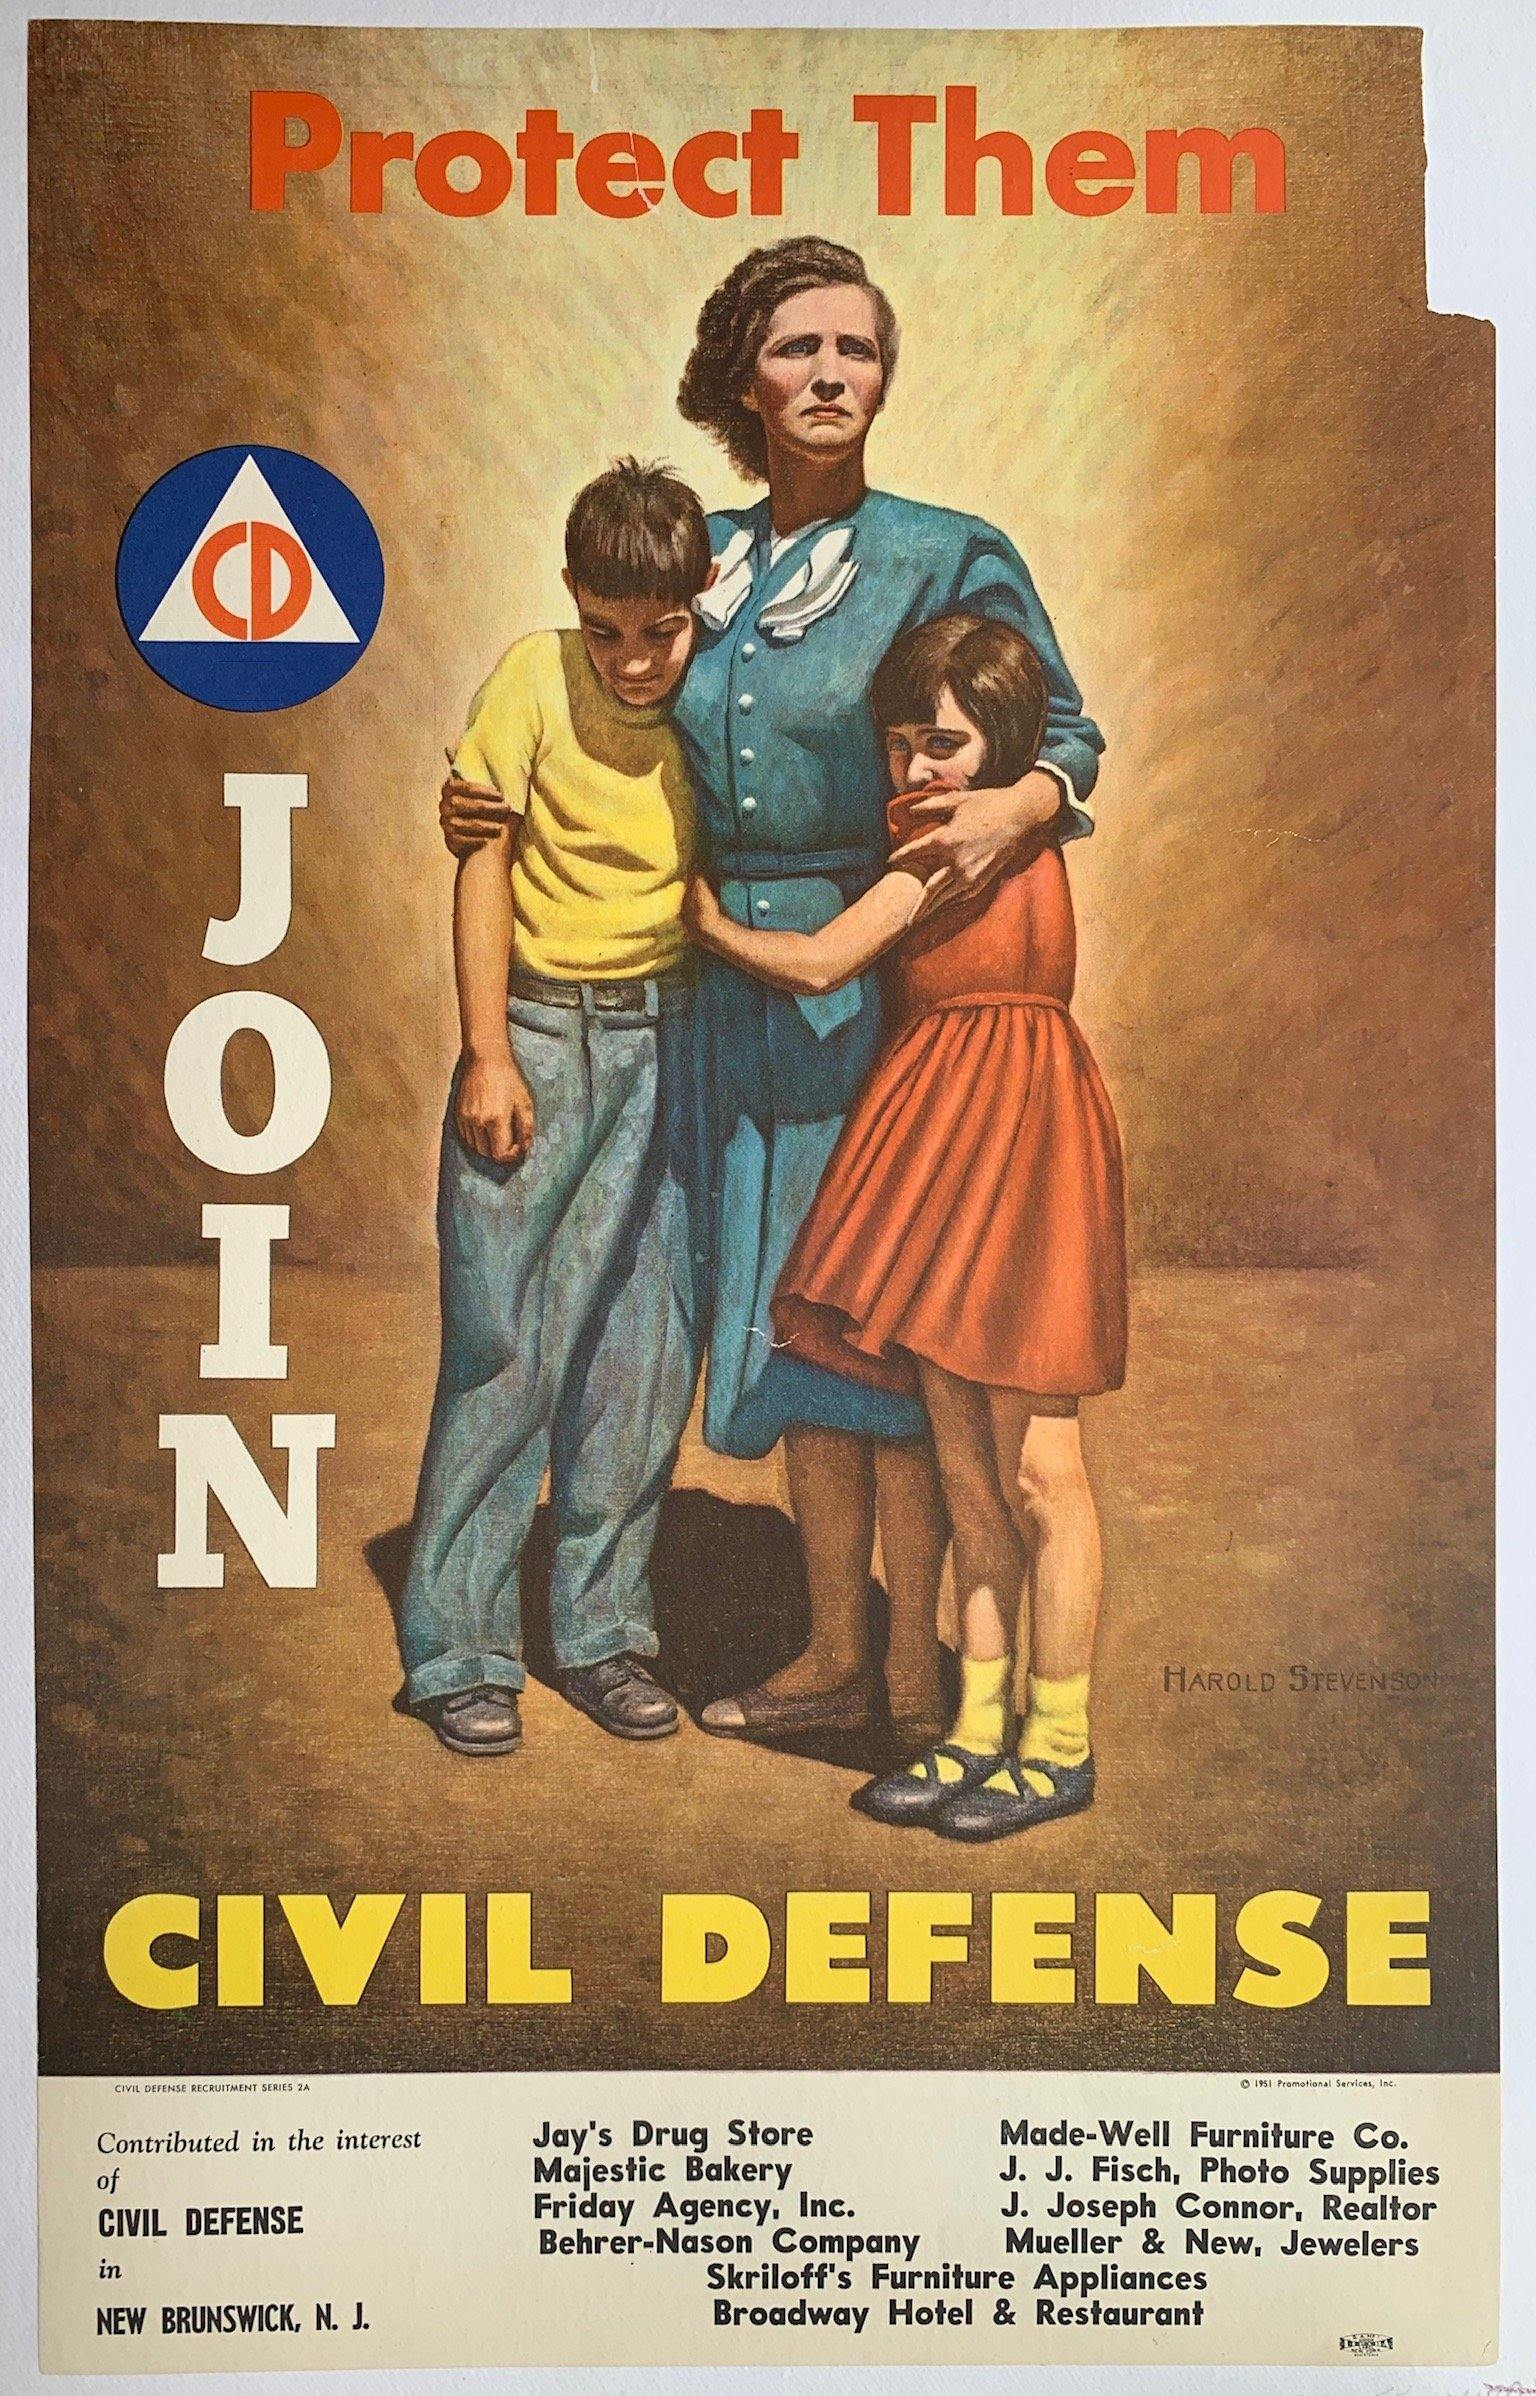 Protect Them, Join Civil Defense